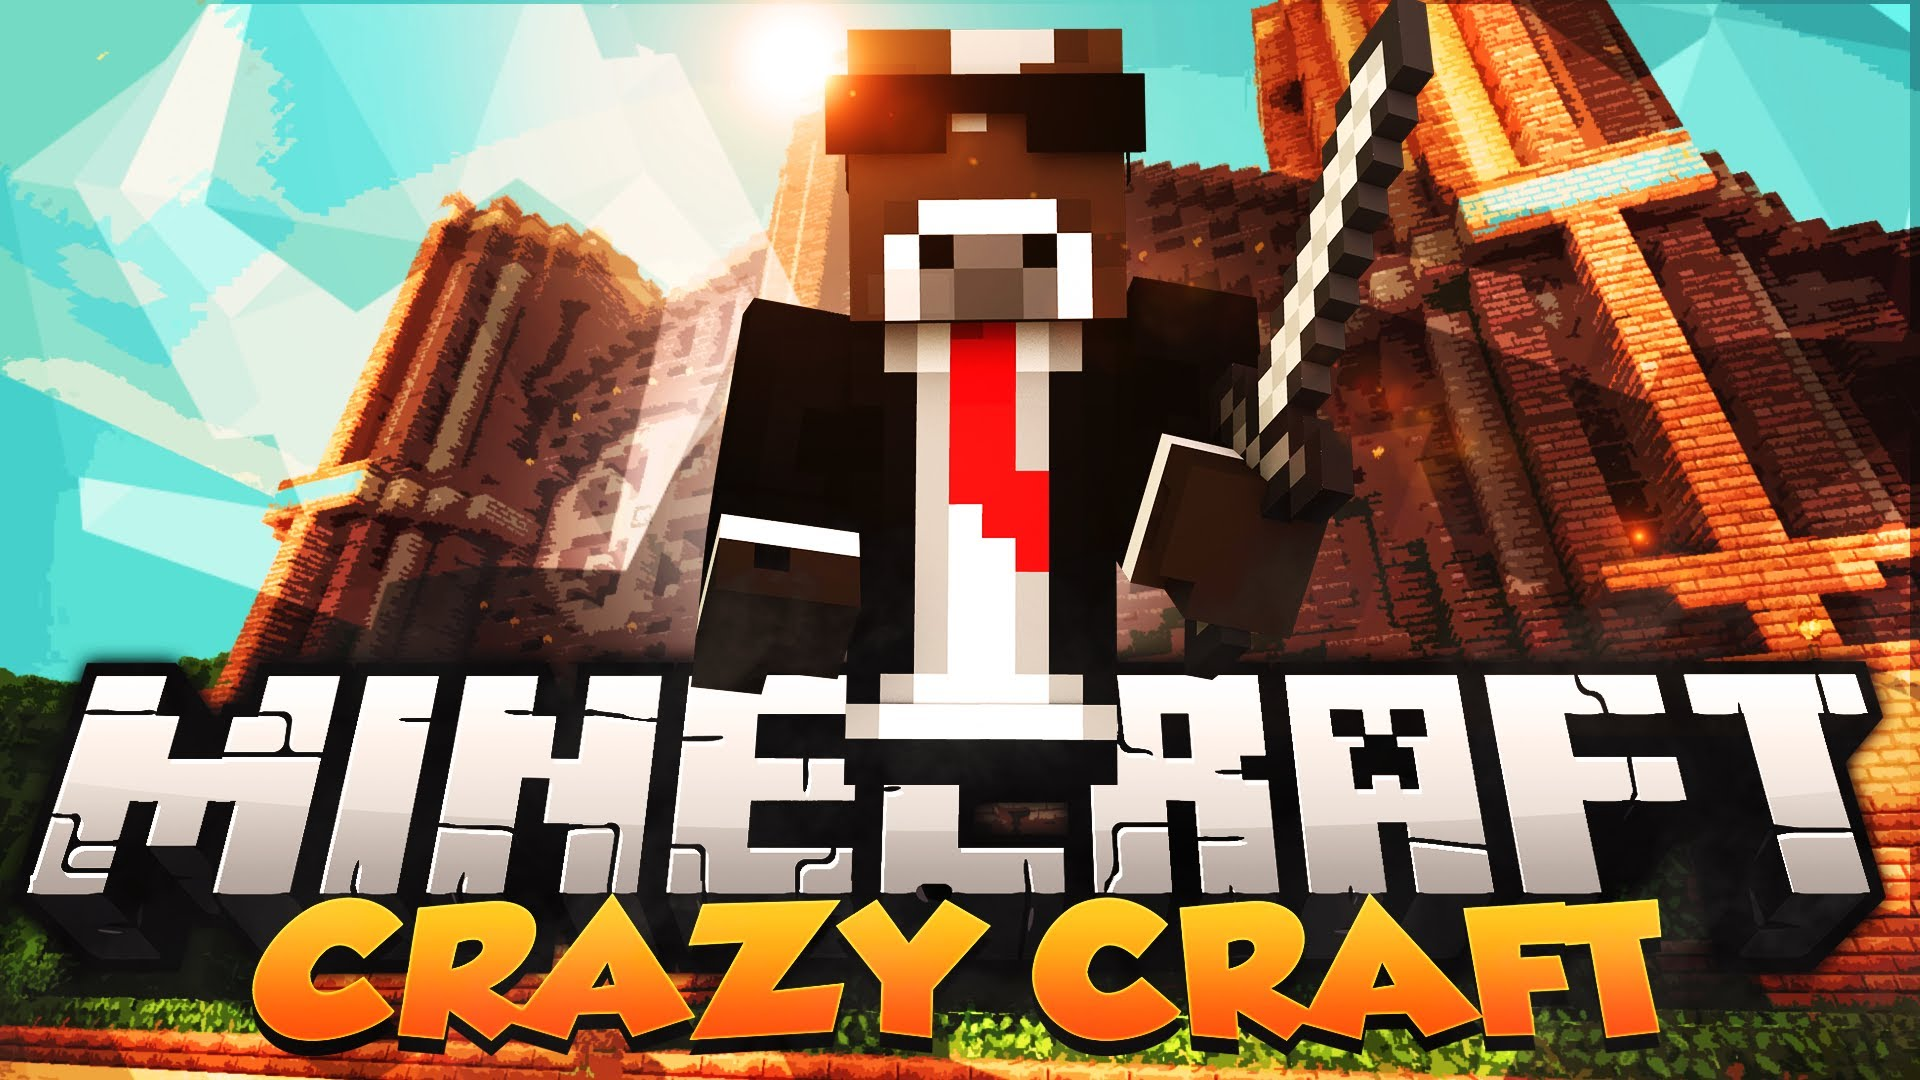 crazy craft mod minecraft craft mod pack for pc 1 13 1 1 12 1794